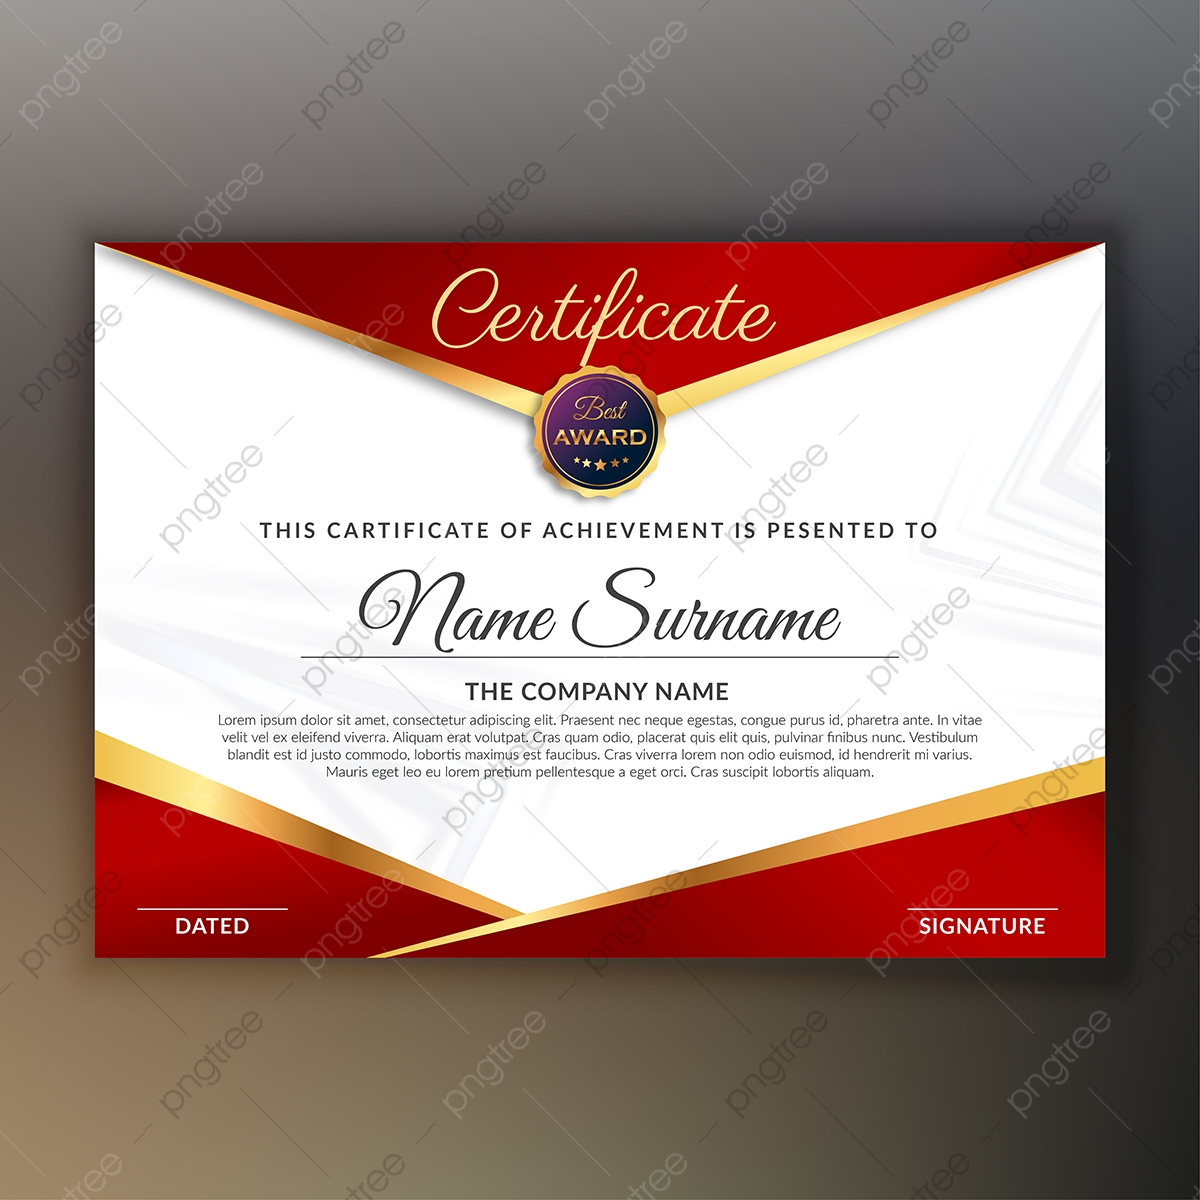 Scarlet Red Award Certificate Design Template Download on Pngtree Intended For Award Certificate Design Template